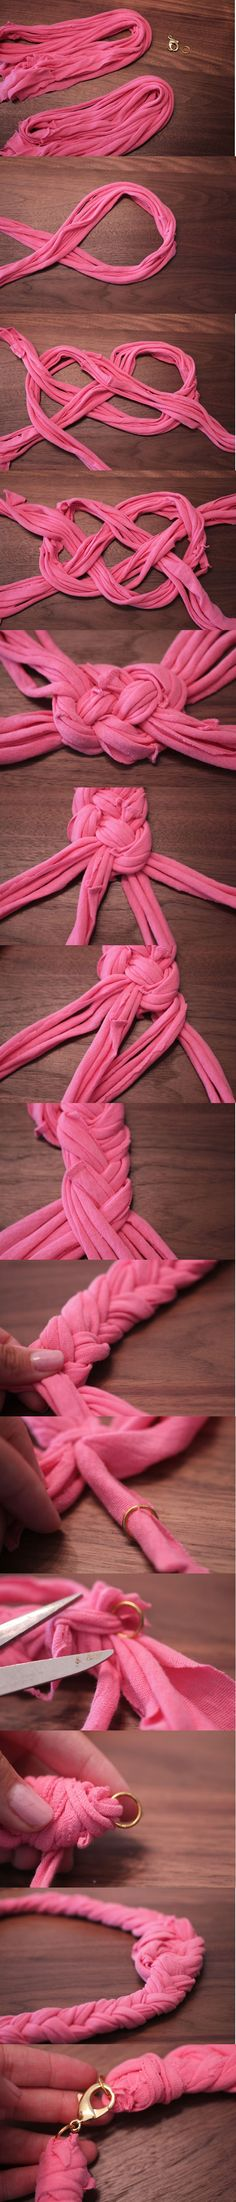 DIY: Use Your Old T-Shirt To Make Necklace